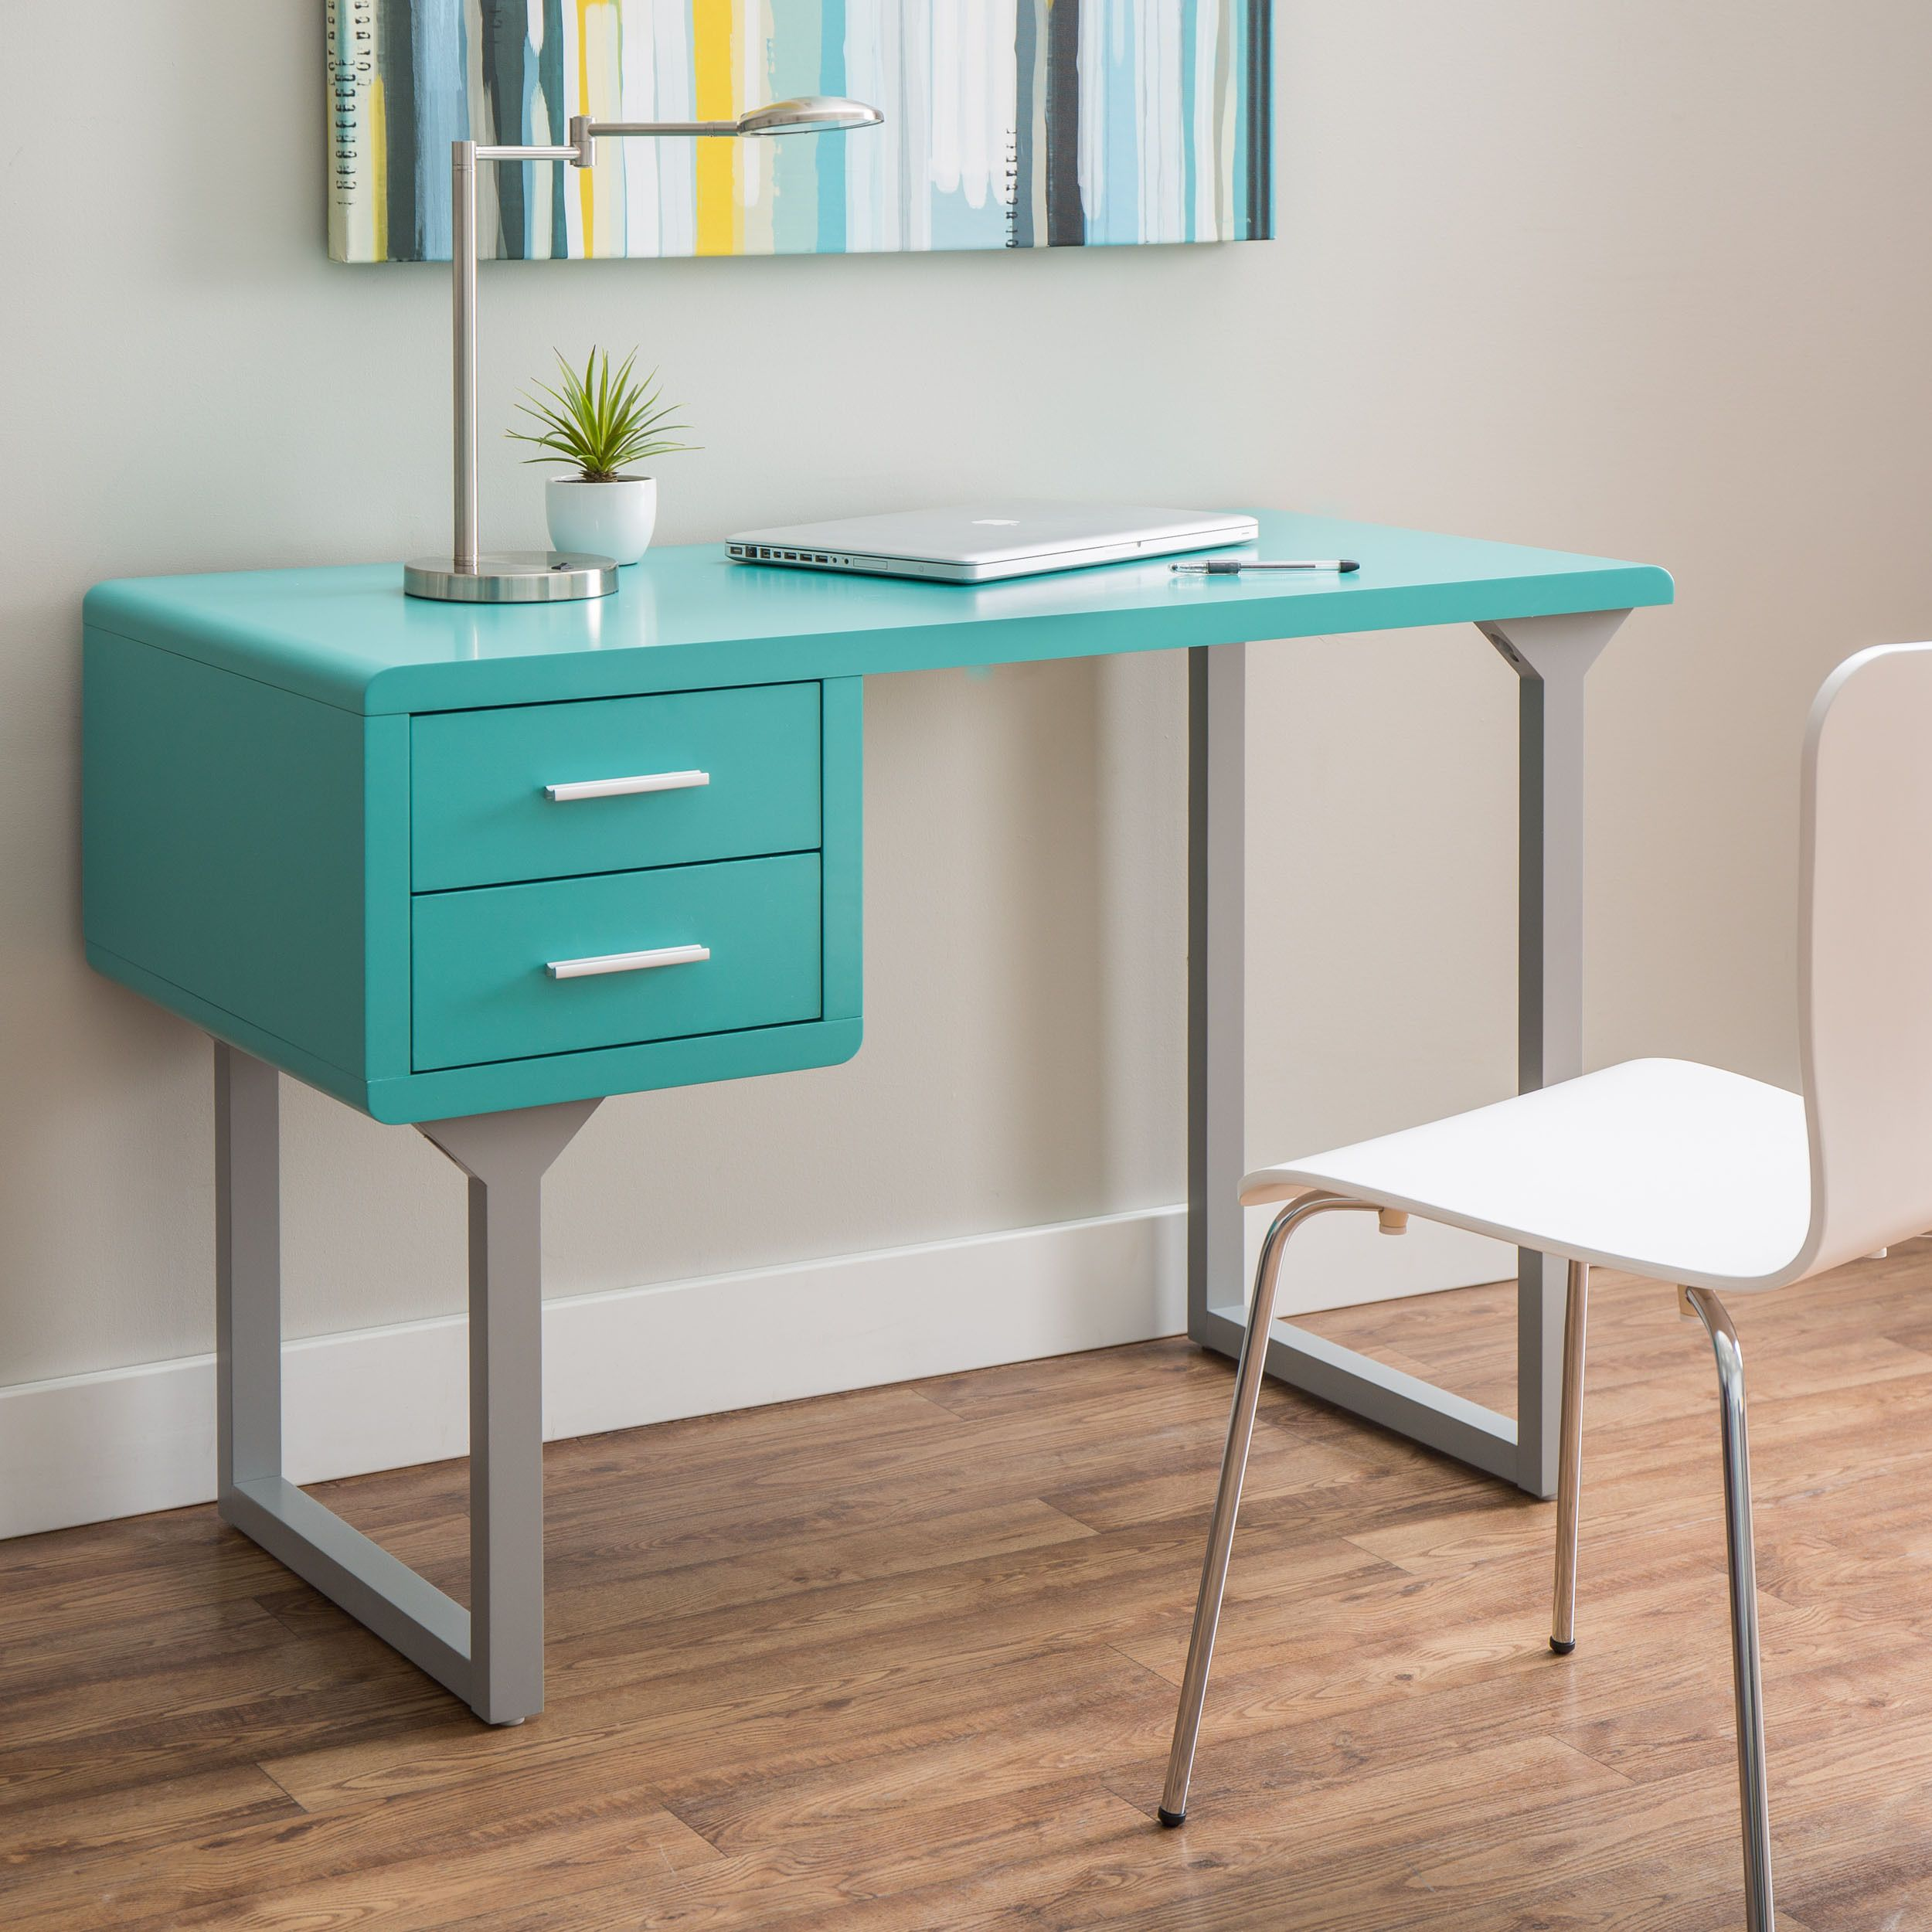 Retro Turquoise and Grey Writing Desk by I Love Living